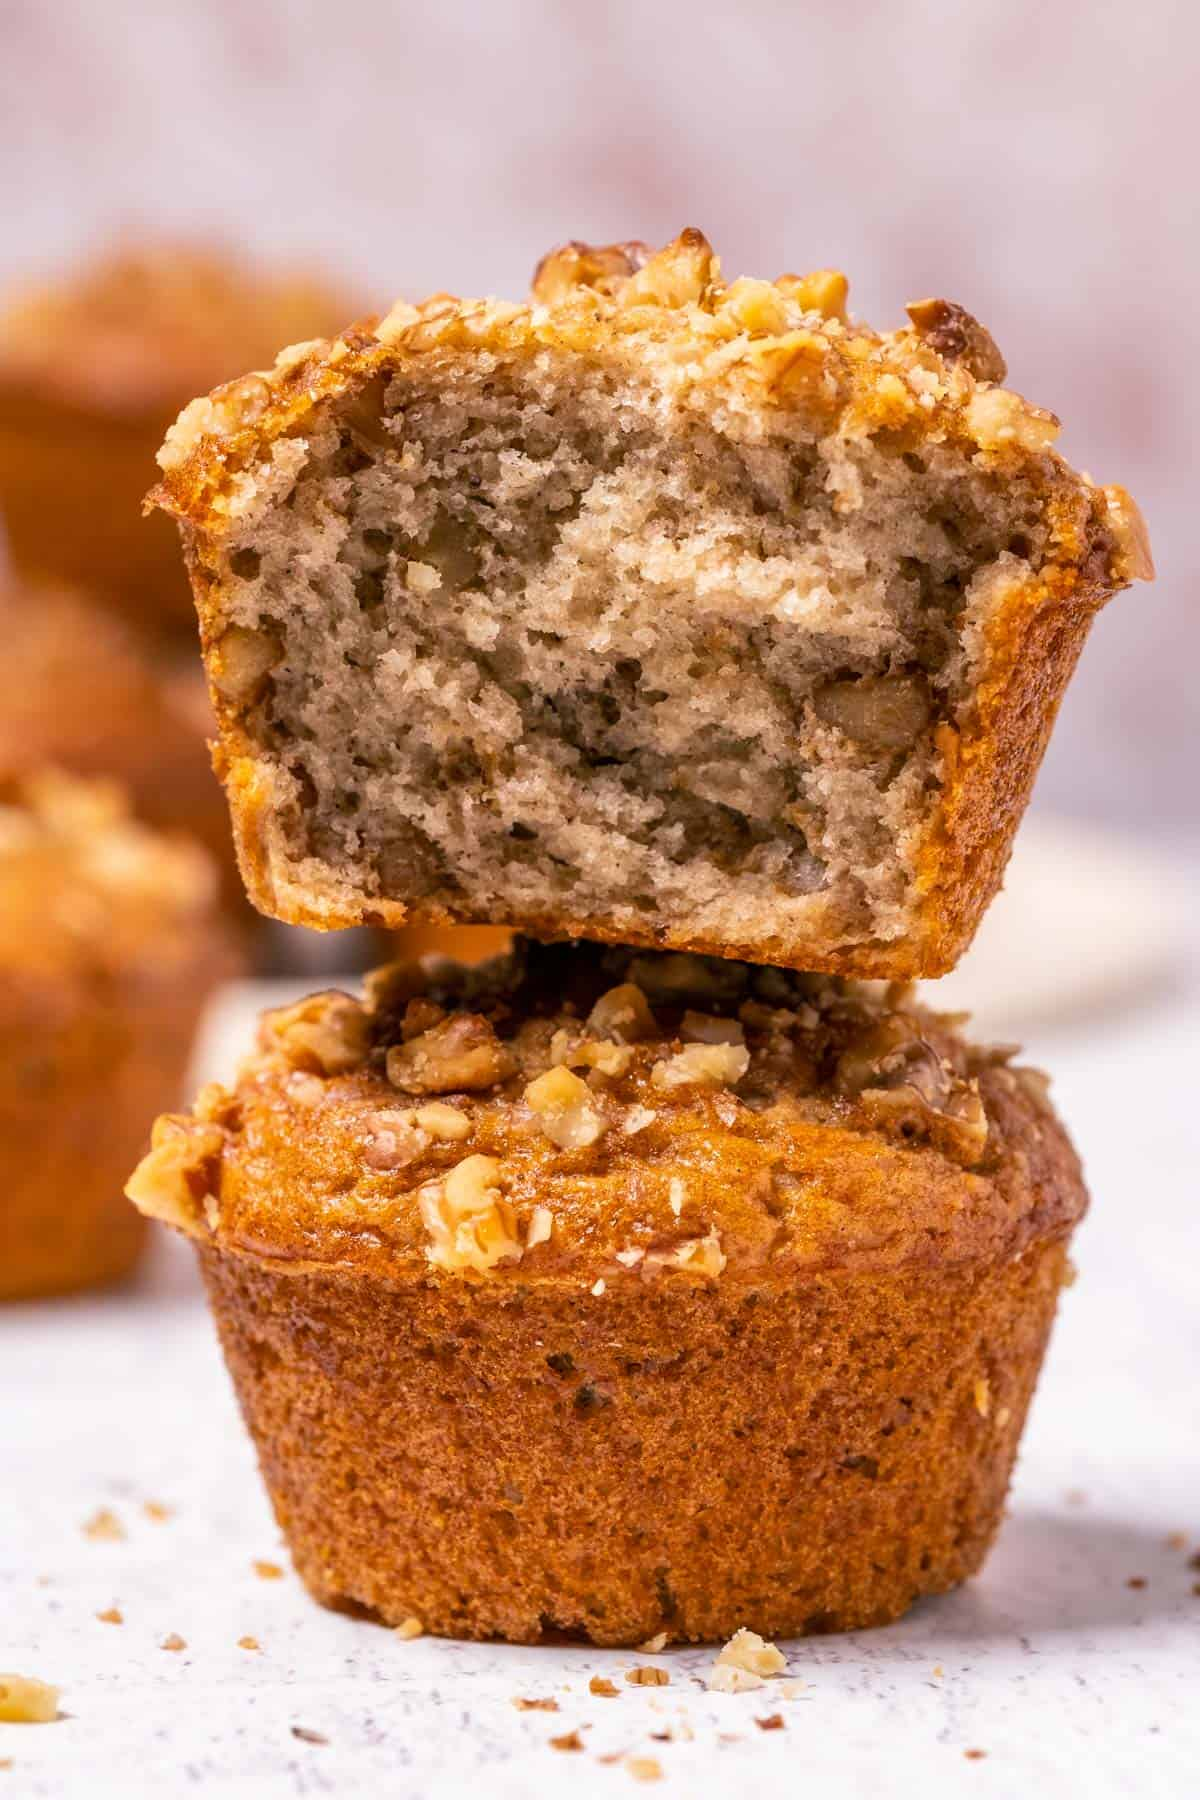 Stack of two vegan banana bread muffins with the top muffin broken in half.